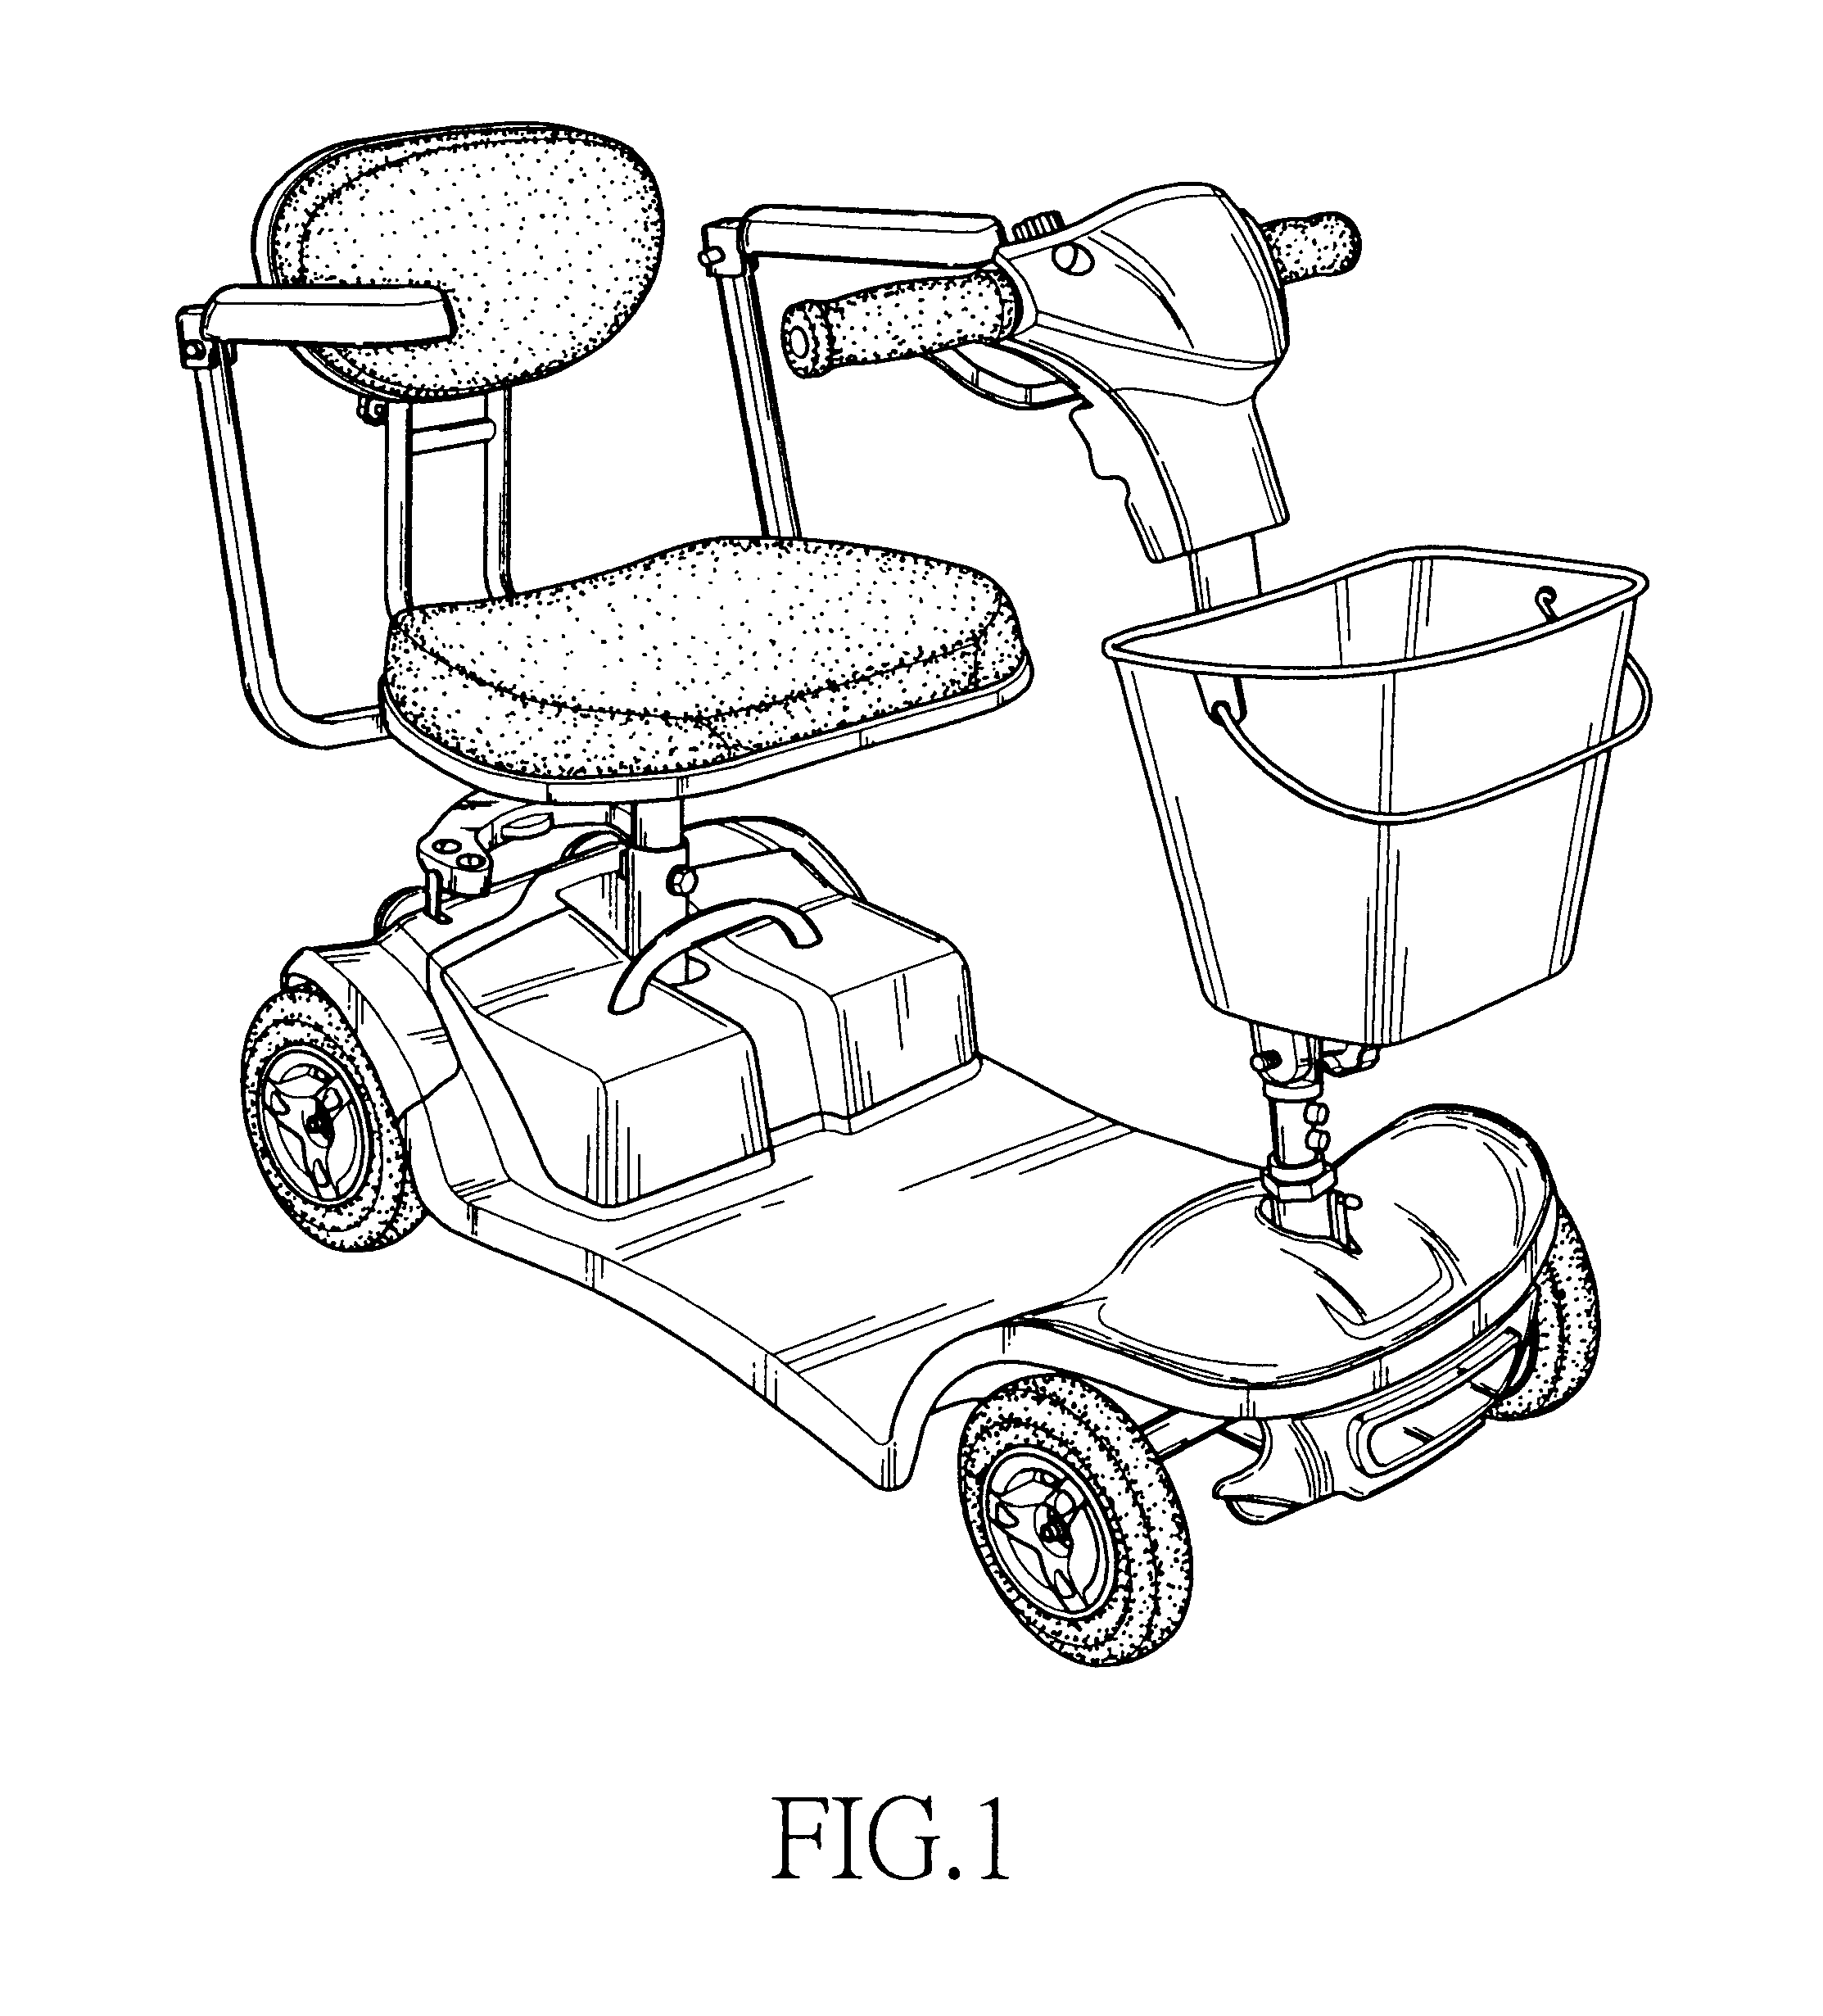 patent usd517456 - electric mobility scooter